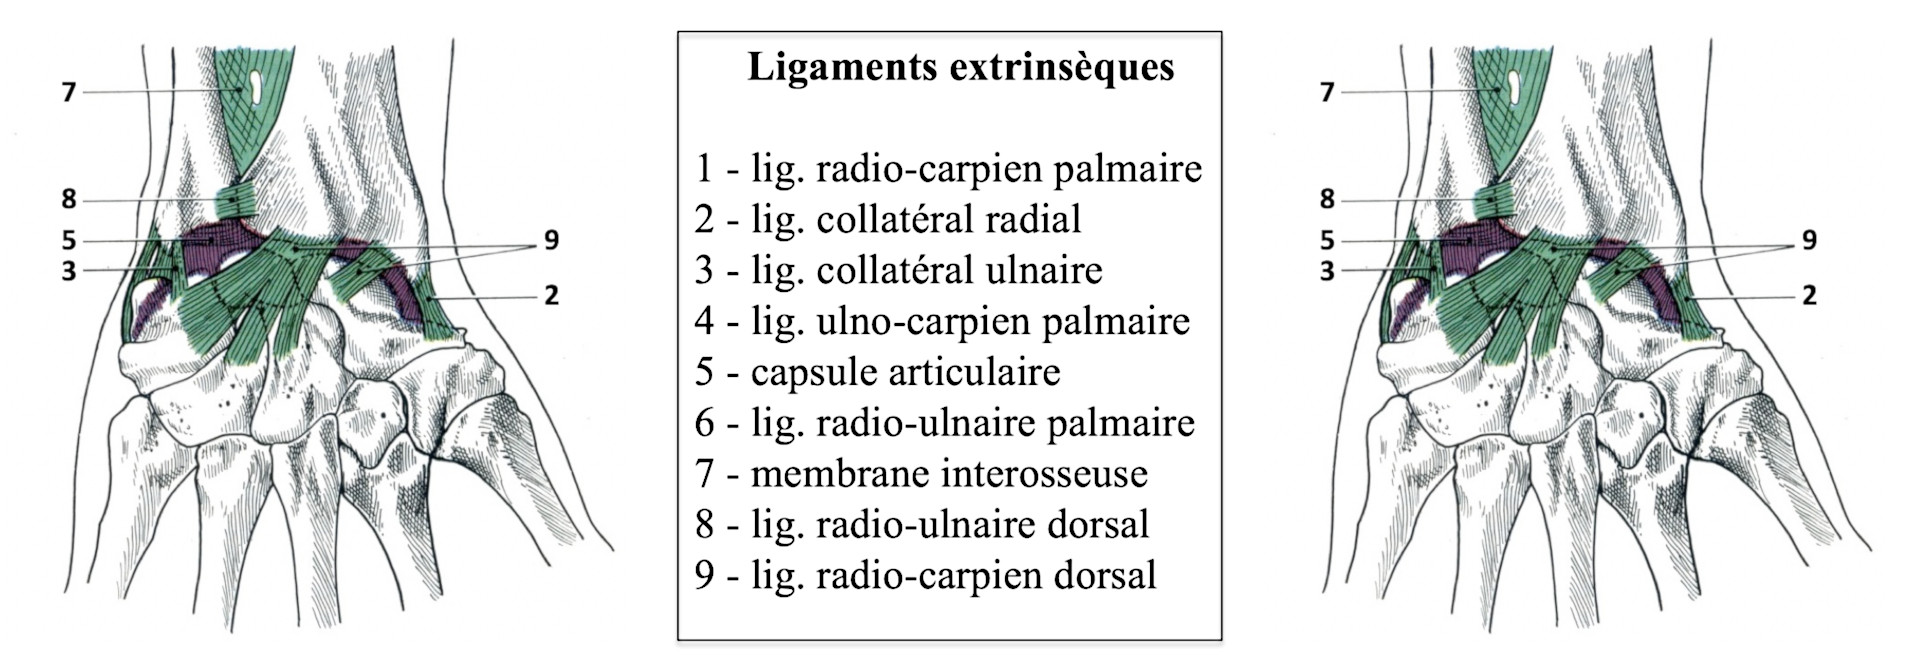 Ligaments extrinsèques du carpe